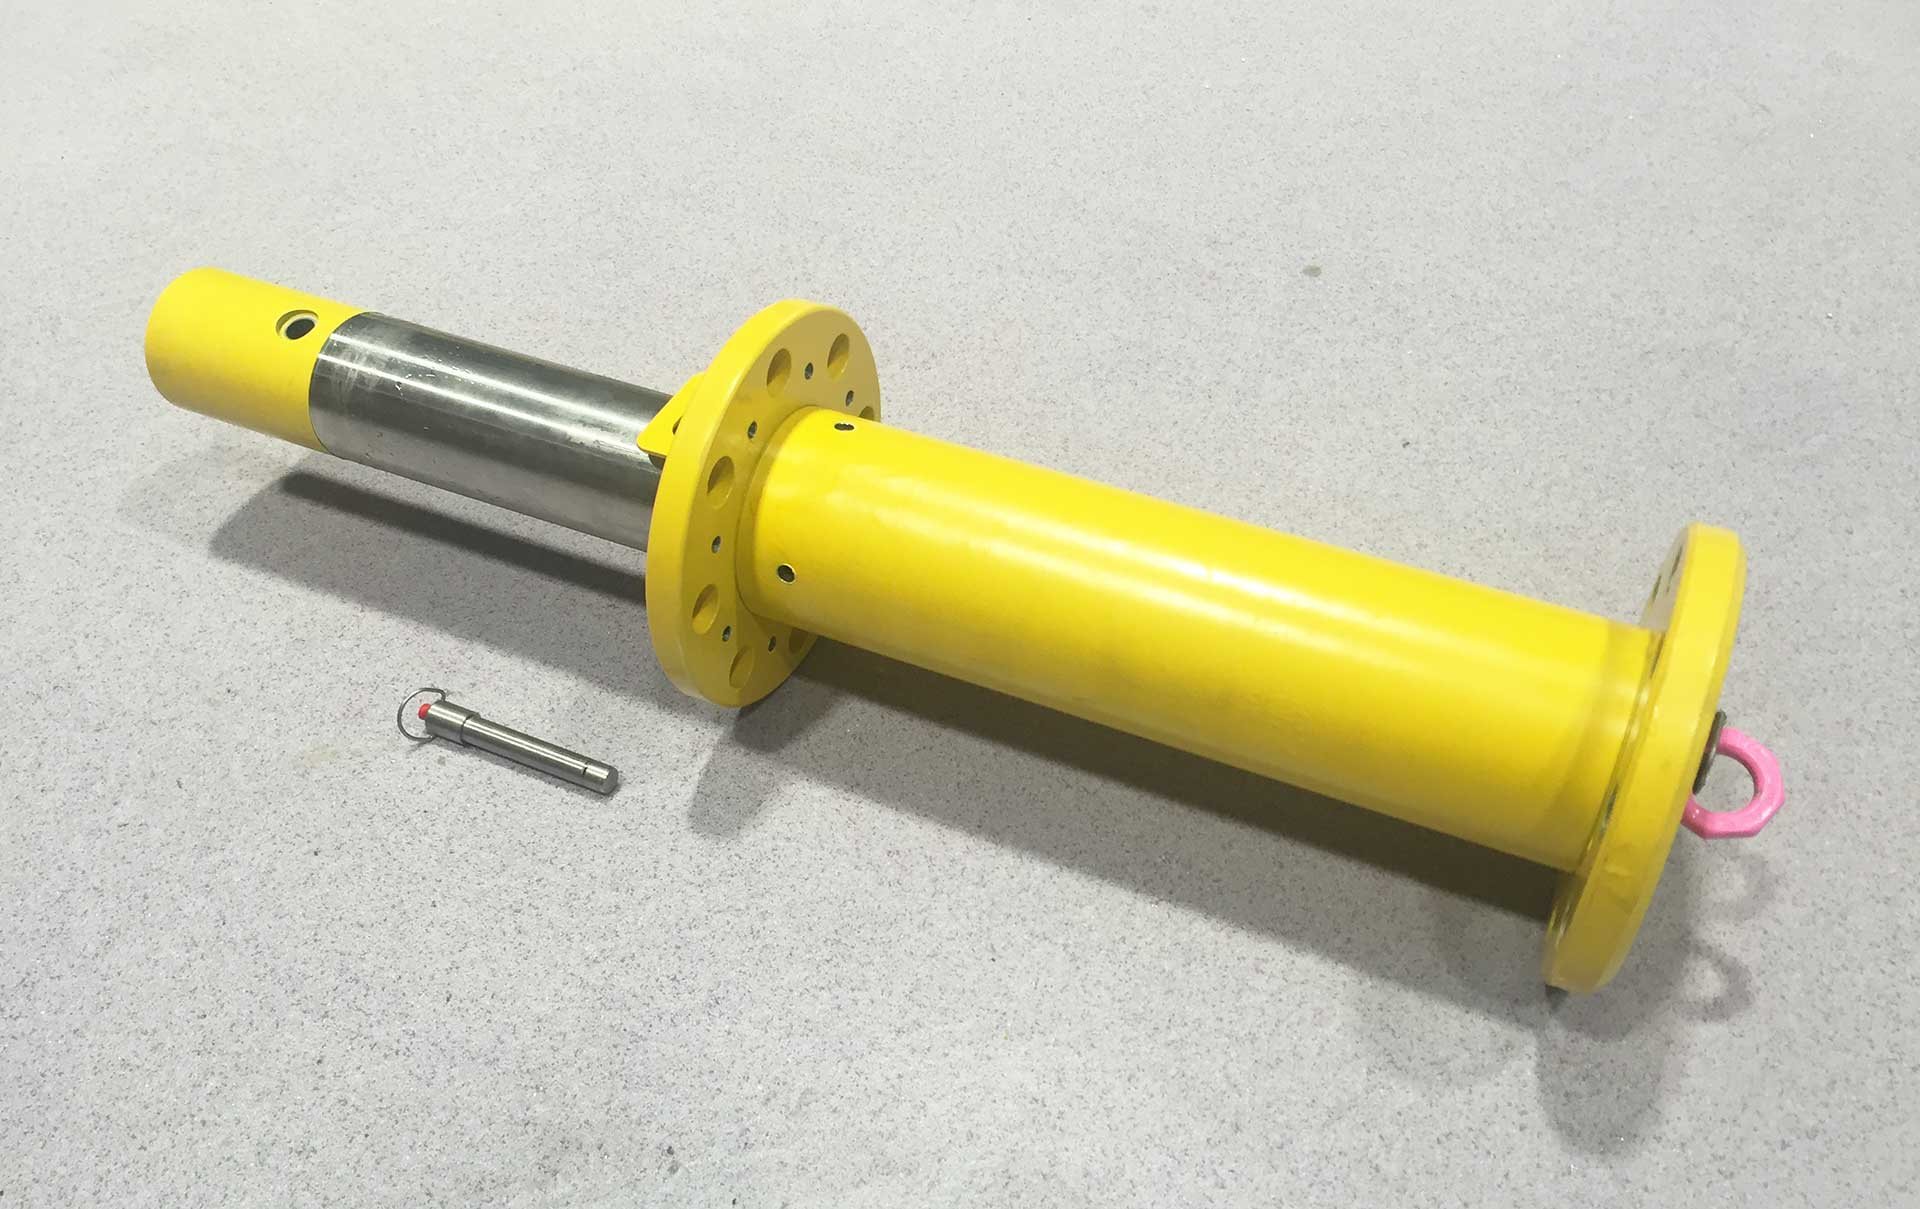 Soft Landing Cylinder to reduce the inpact of the load when loweringmodules into subsea structure.